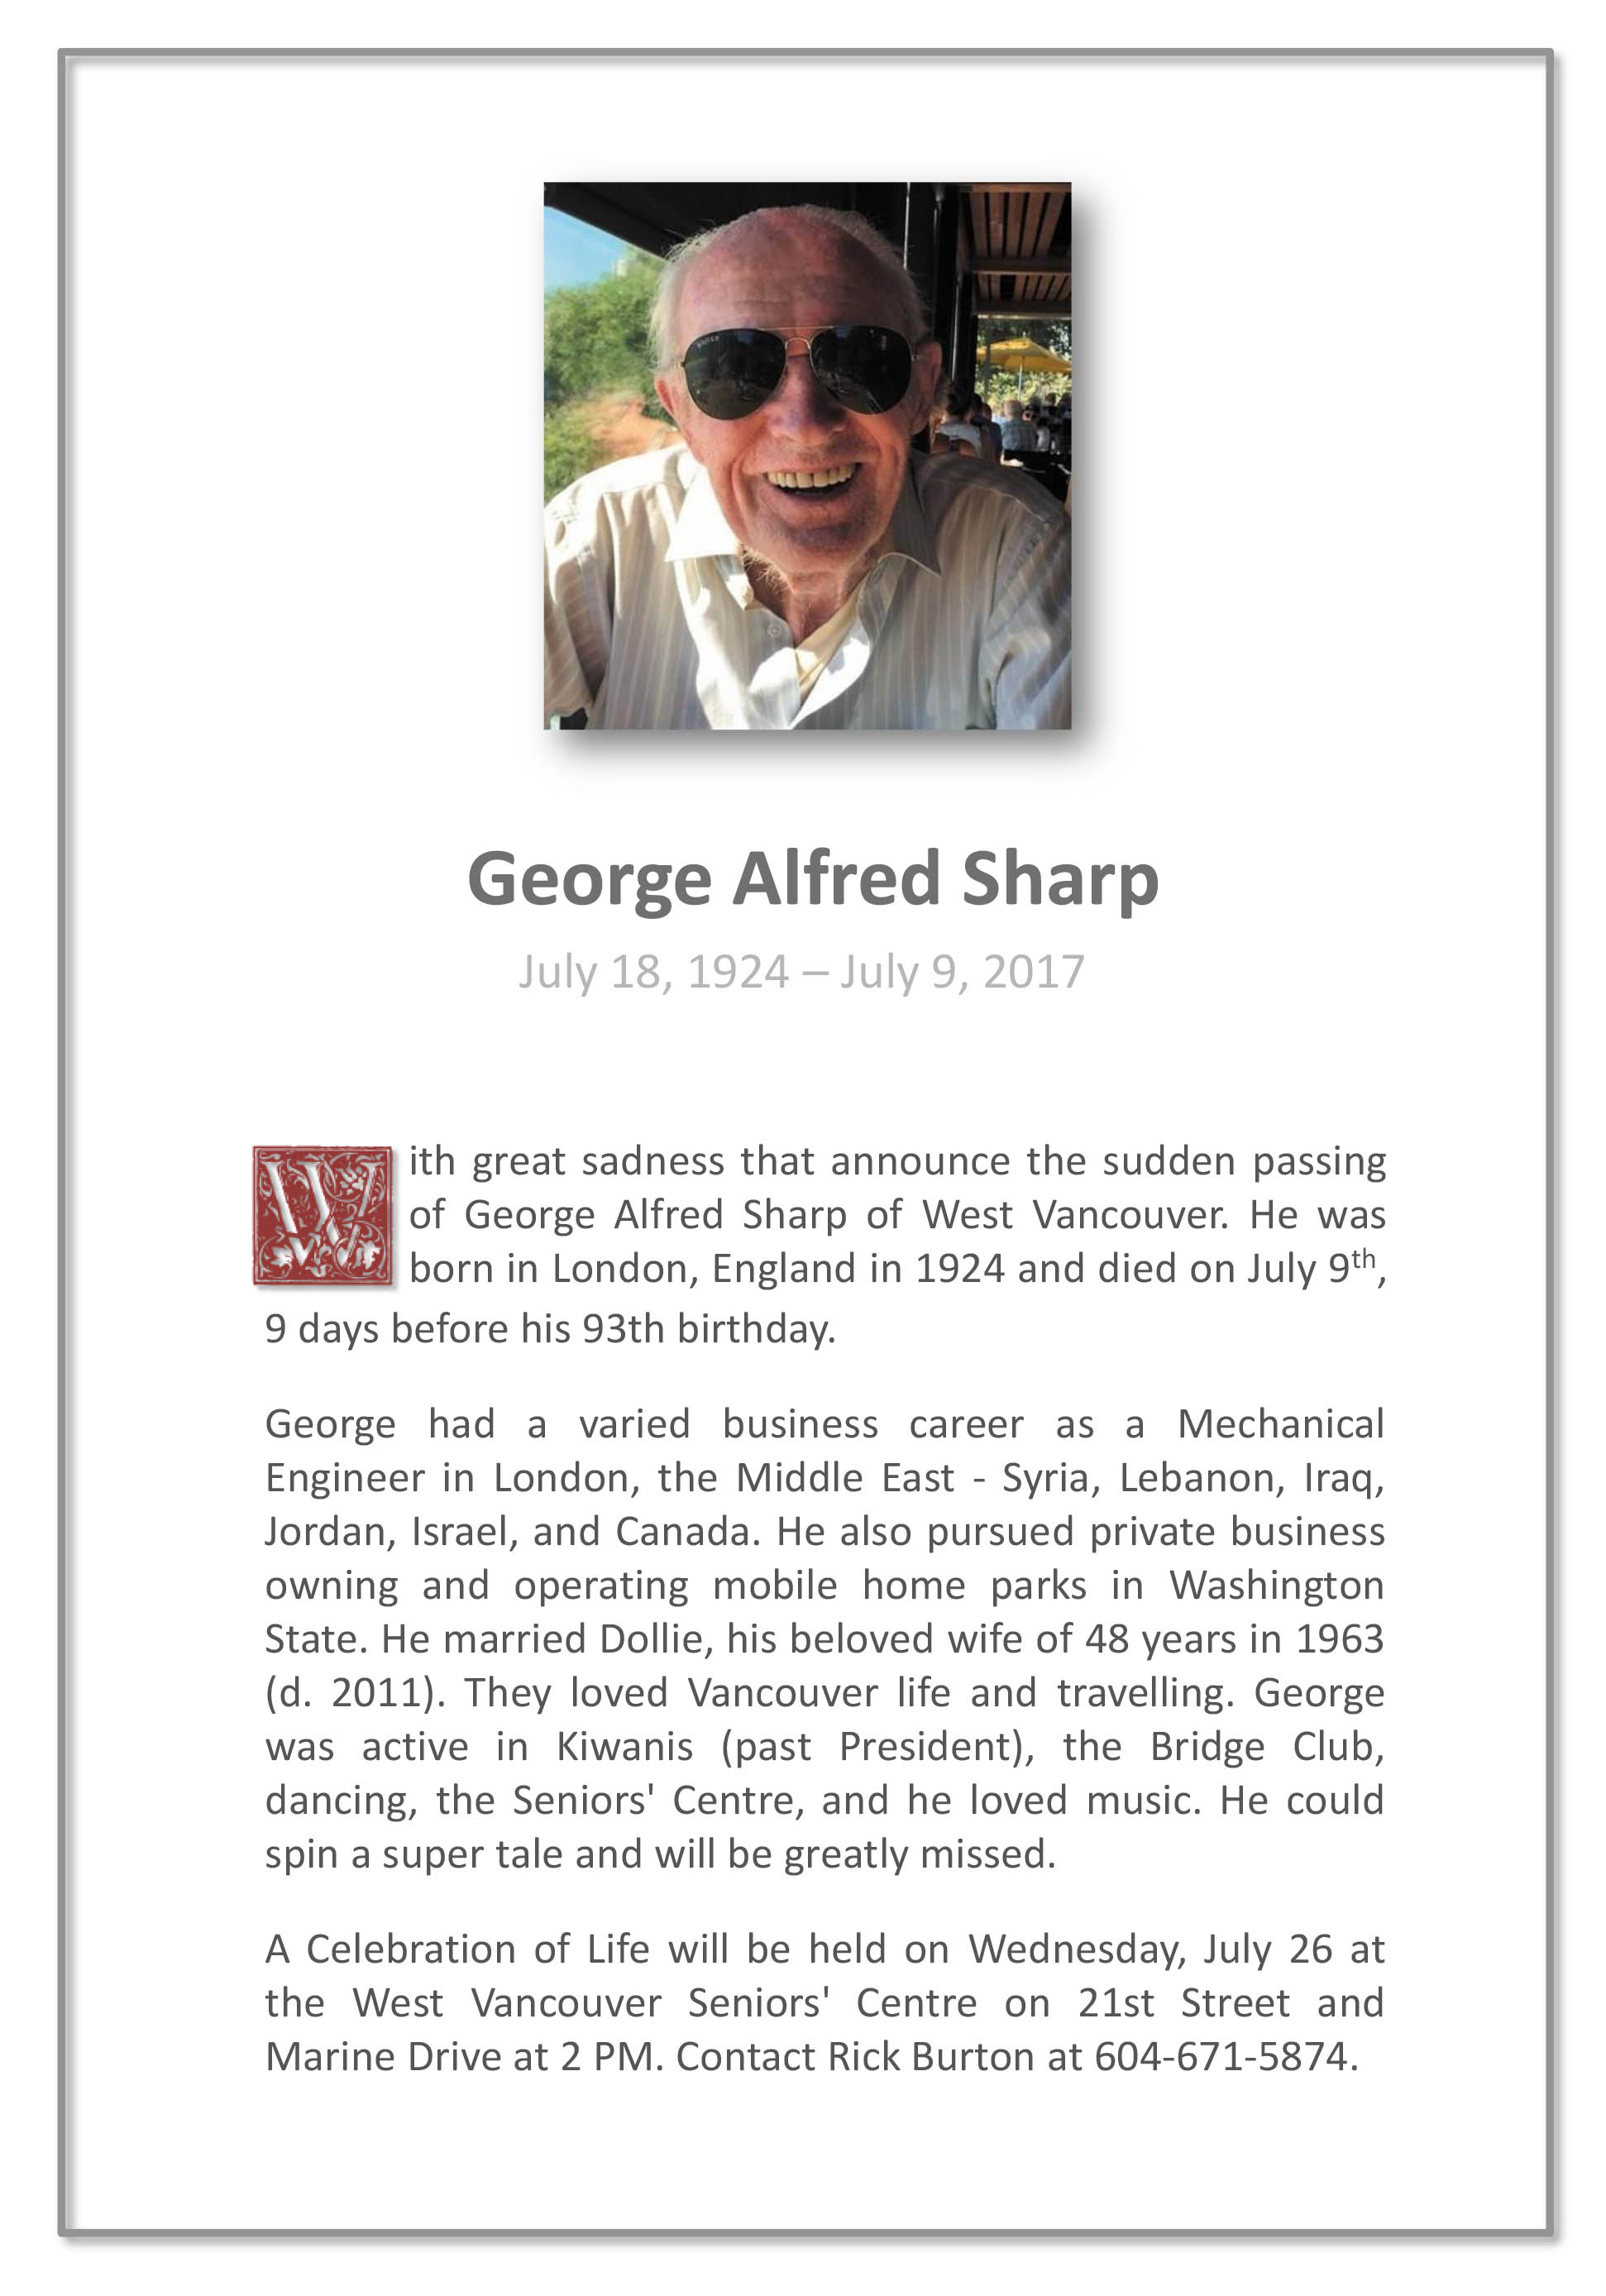 Obituary for George Alfred Sharp of West Vancouver BC